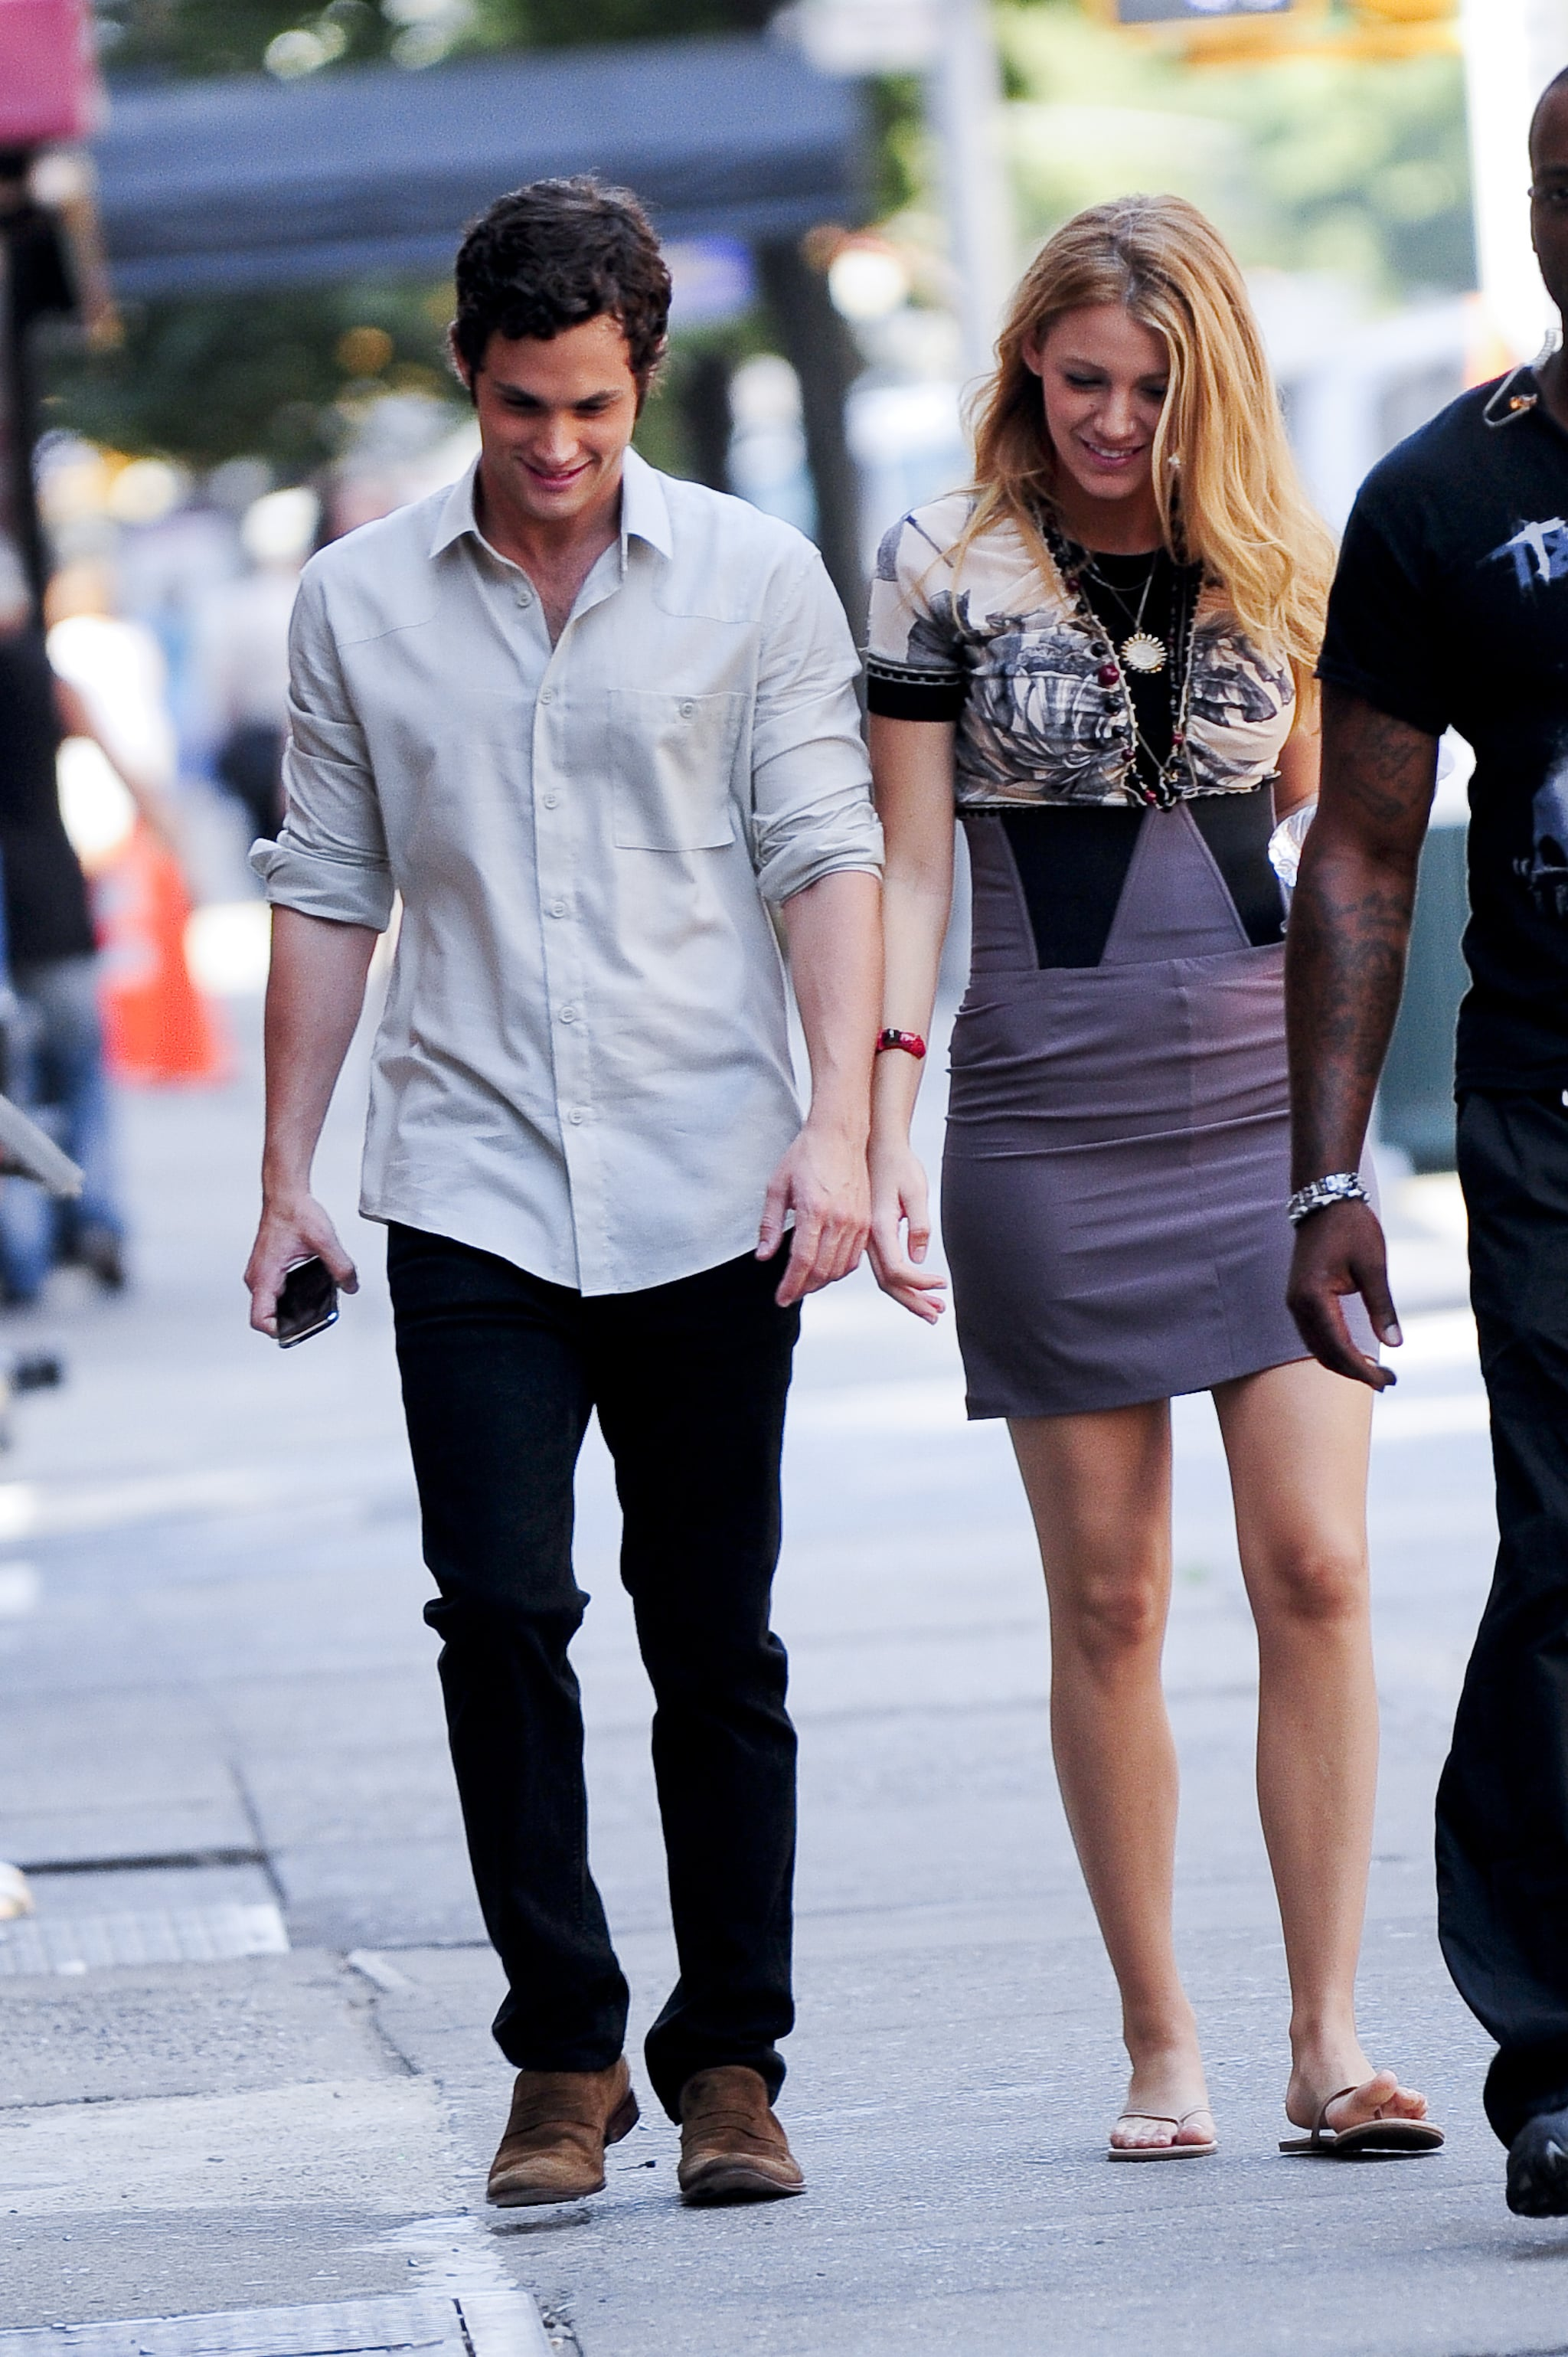 Then real-life couple Penn Badgley and Blake Lively walked to the set in August 2009.